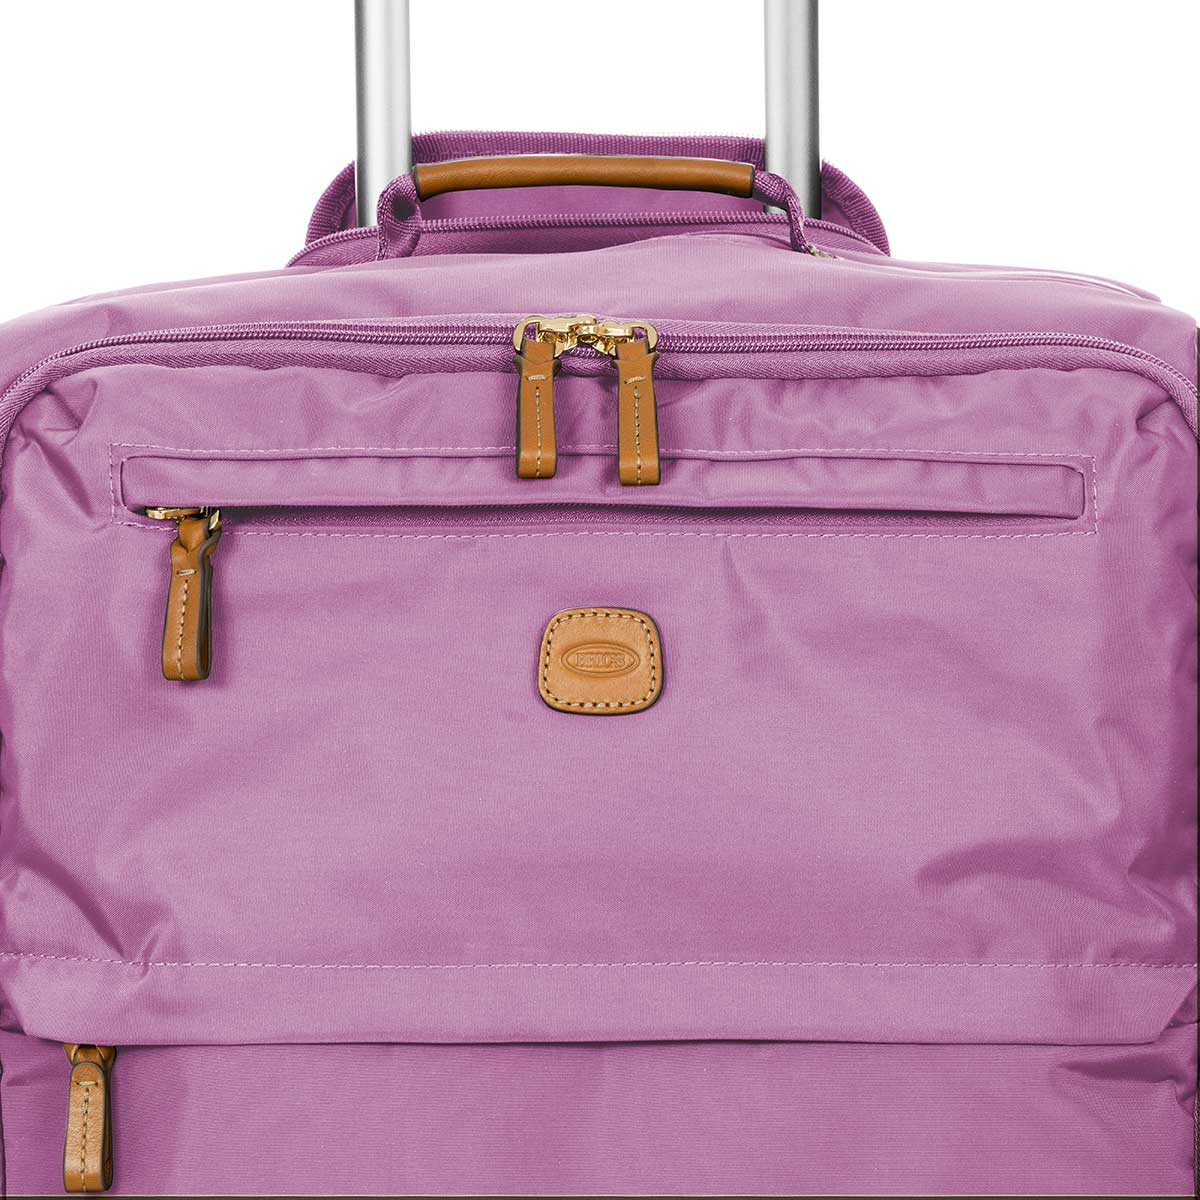 "BRIC'S X-Bag 25"" Spinner - Wisteria 